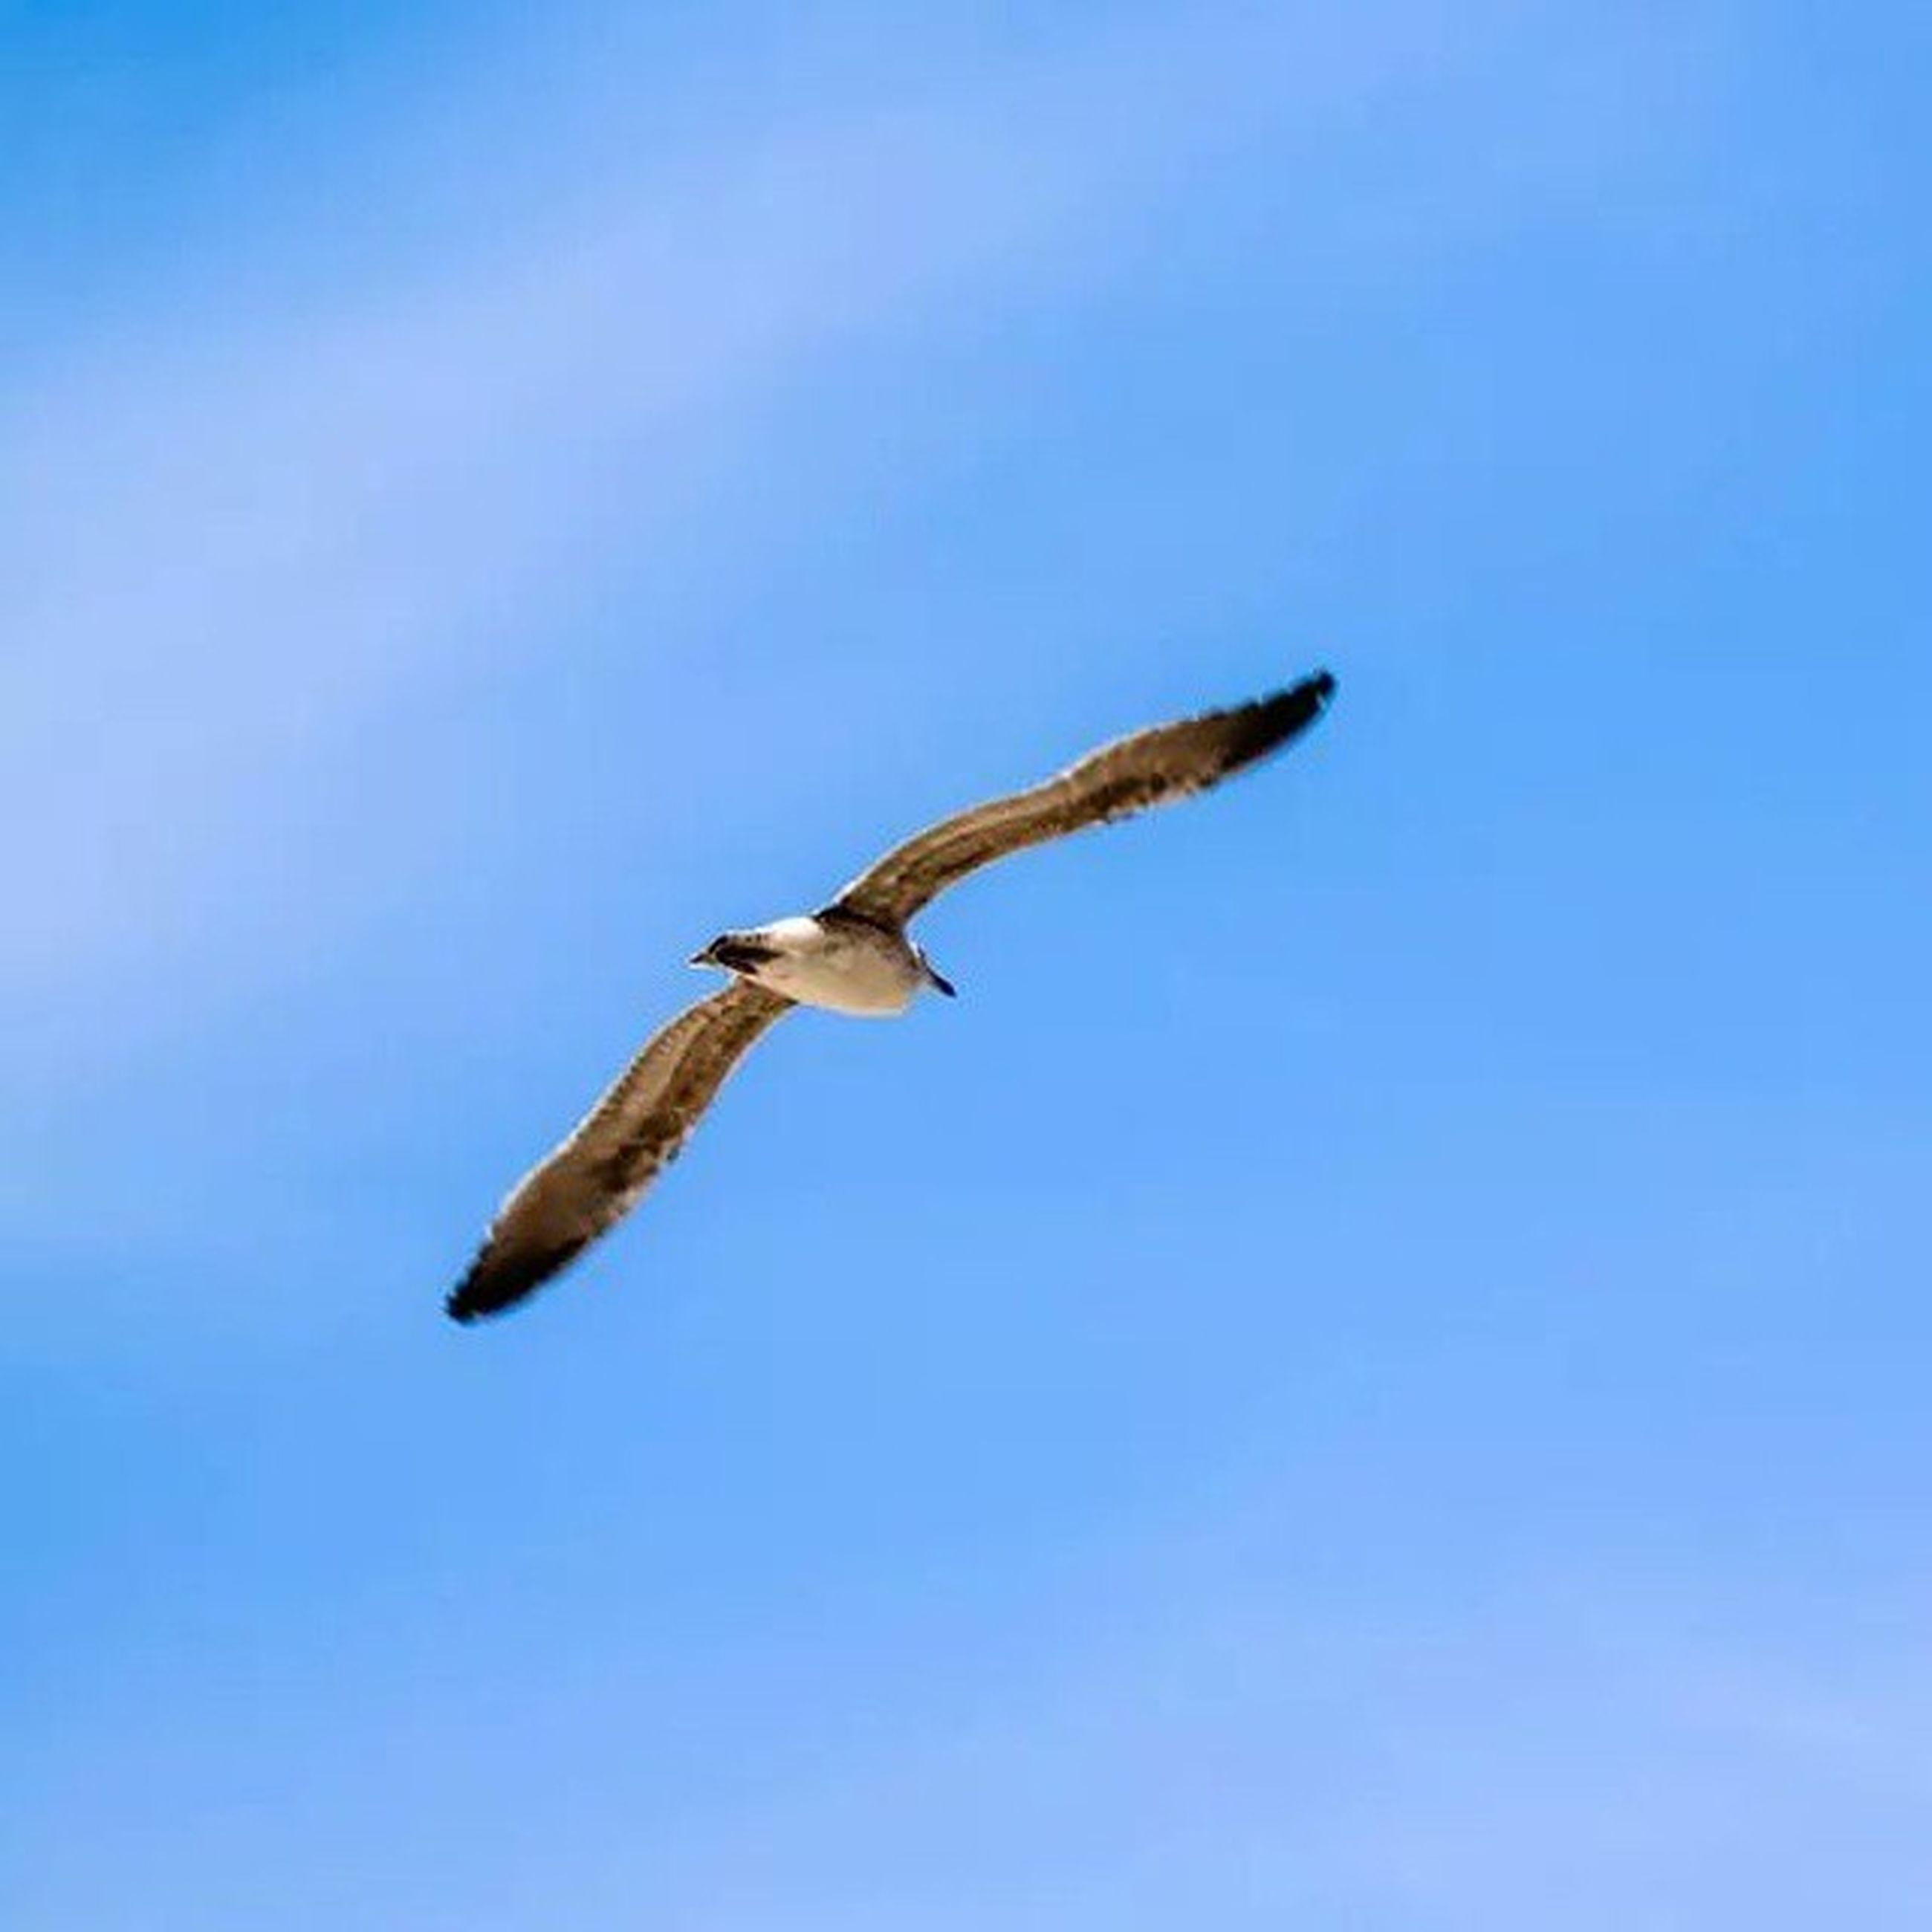 flying, bird, animal themes, animals in the wild, spread wings, low angle view, wildlife, clear sky, one animal, blue, mid-air, copy space, seagull, nature, full length, motion, day, no people, outdoors, flight